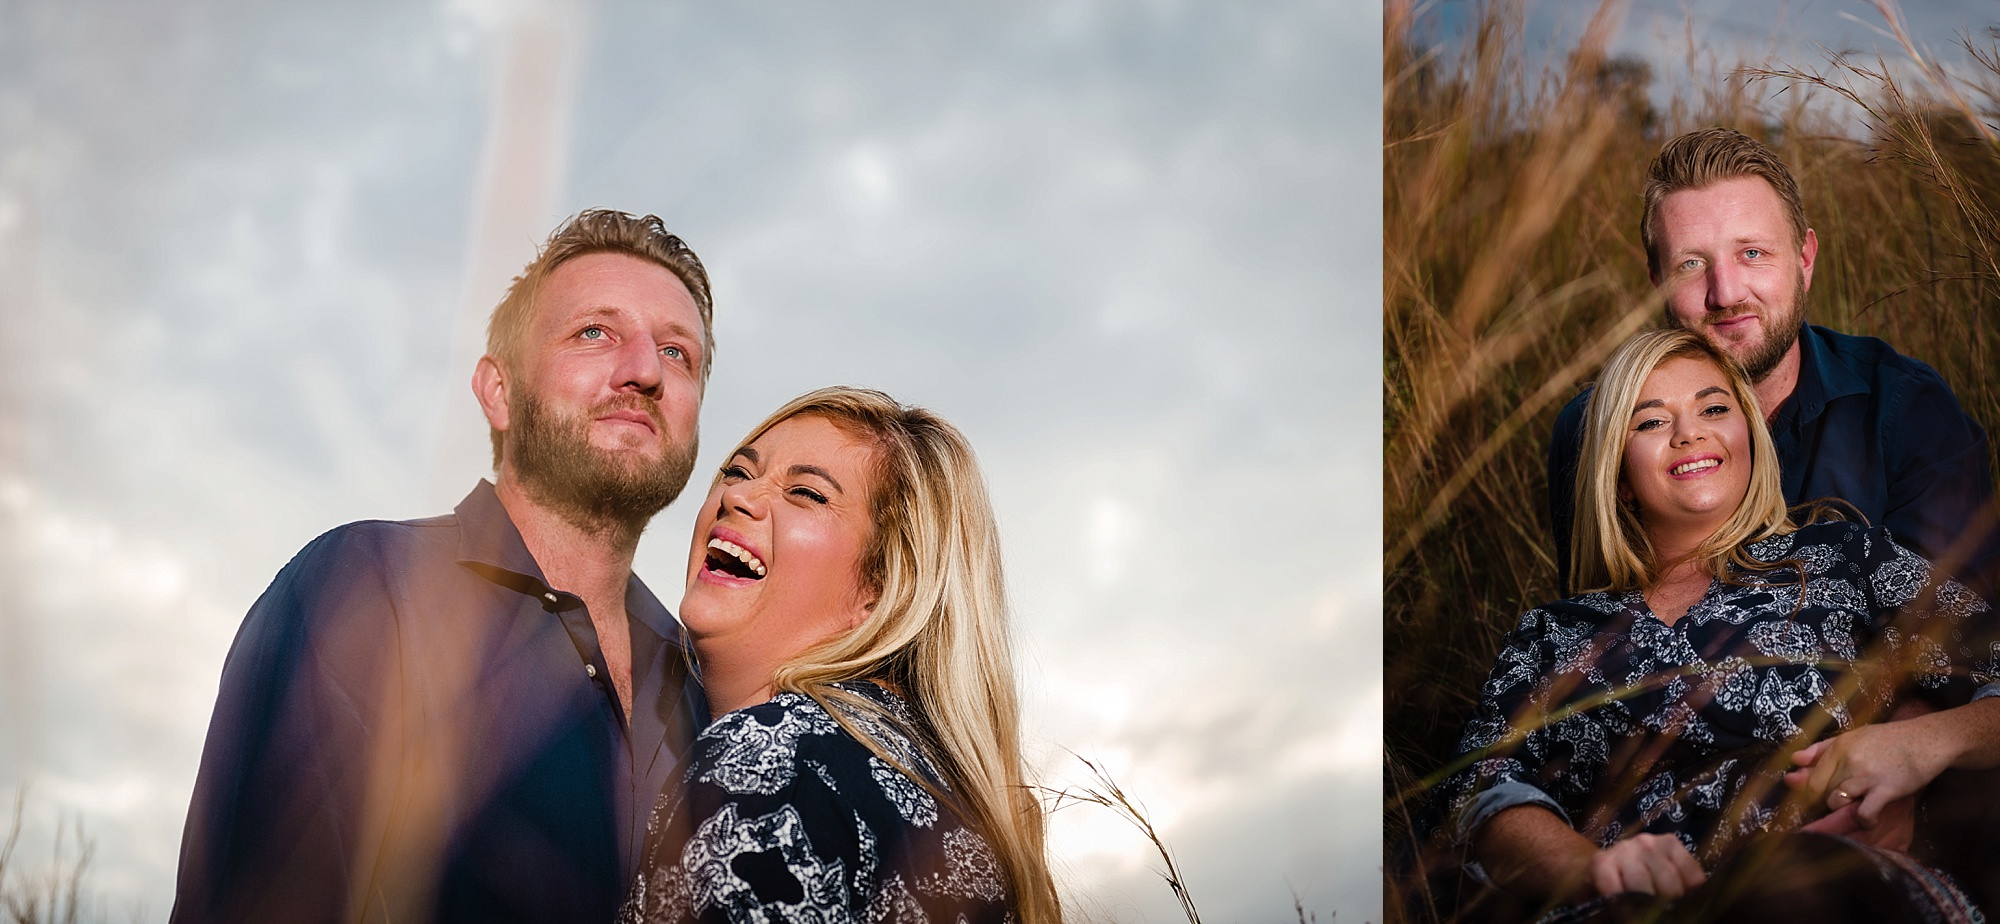 Wynandvandermerwe david irene engagement shoot nature gauteng29.jpg